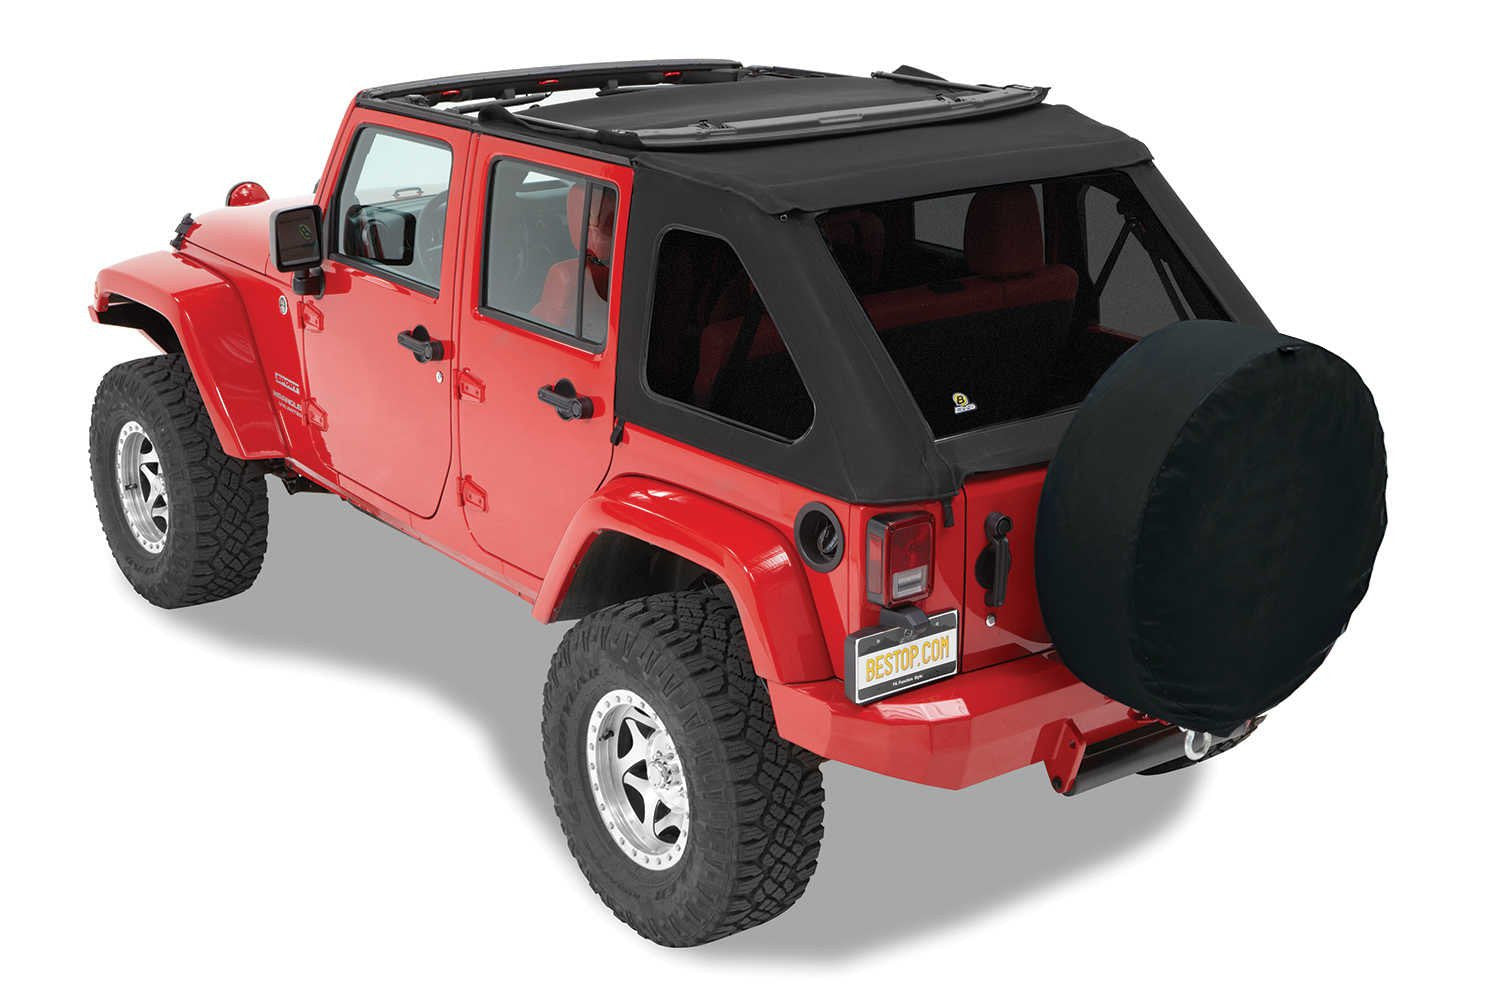 Bestop Trektop NX Twill Soft Top For 07 17 Jeep Wrangler Unlimited JK 4 Door